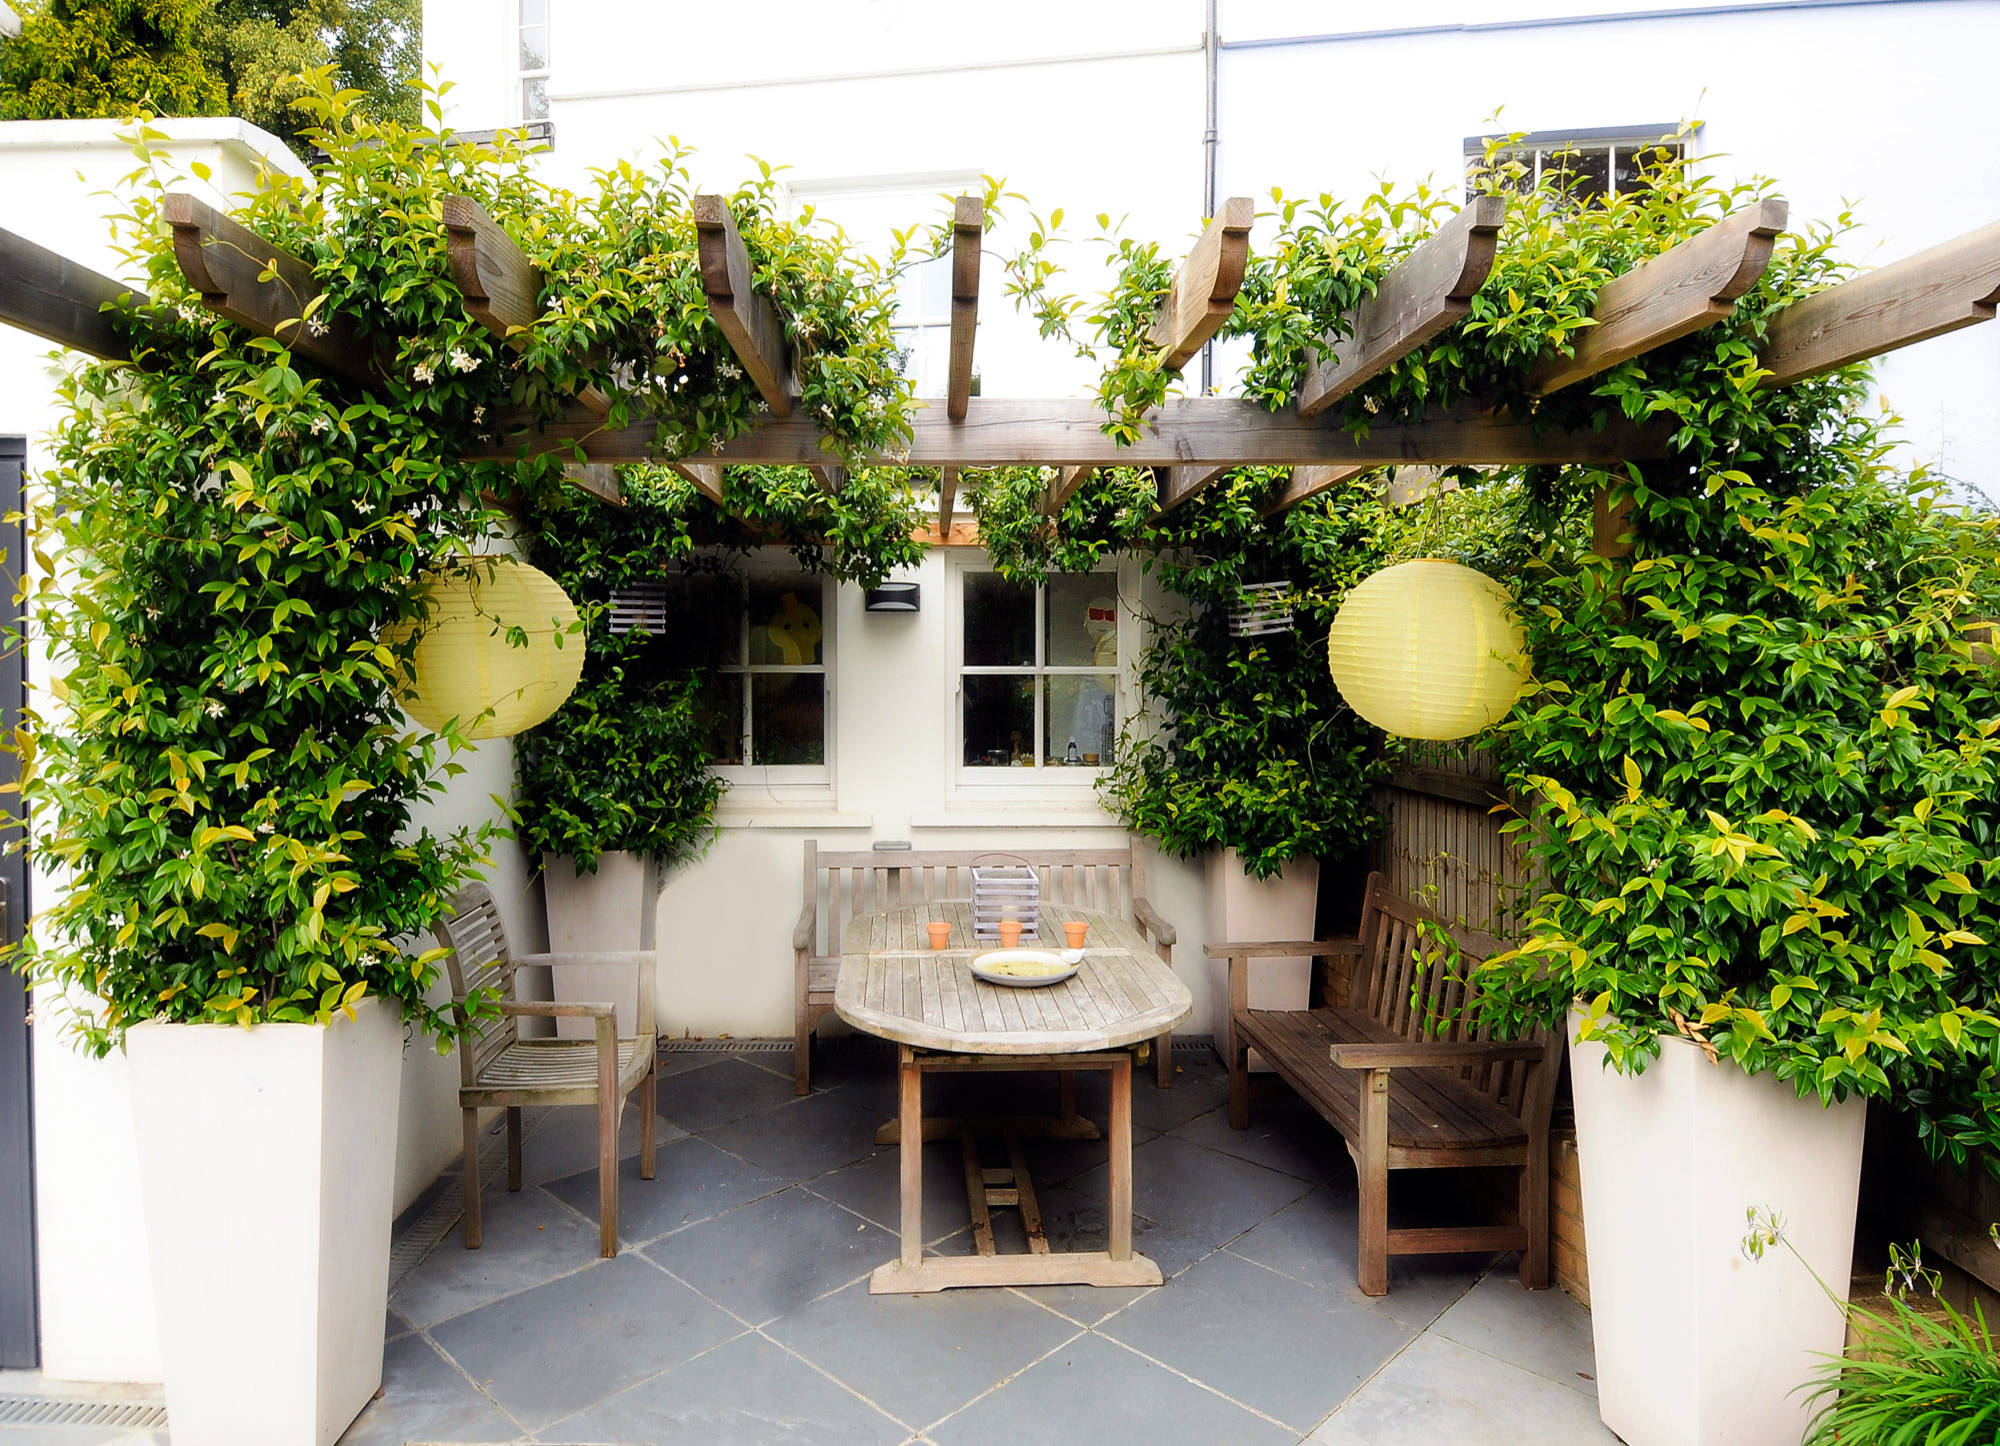 75 Beautiful Small Patio With A Pergola Pictures Ideas March 2021 Houzz